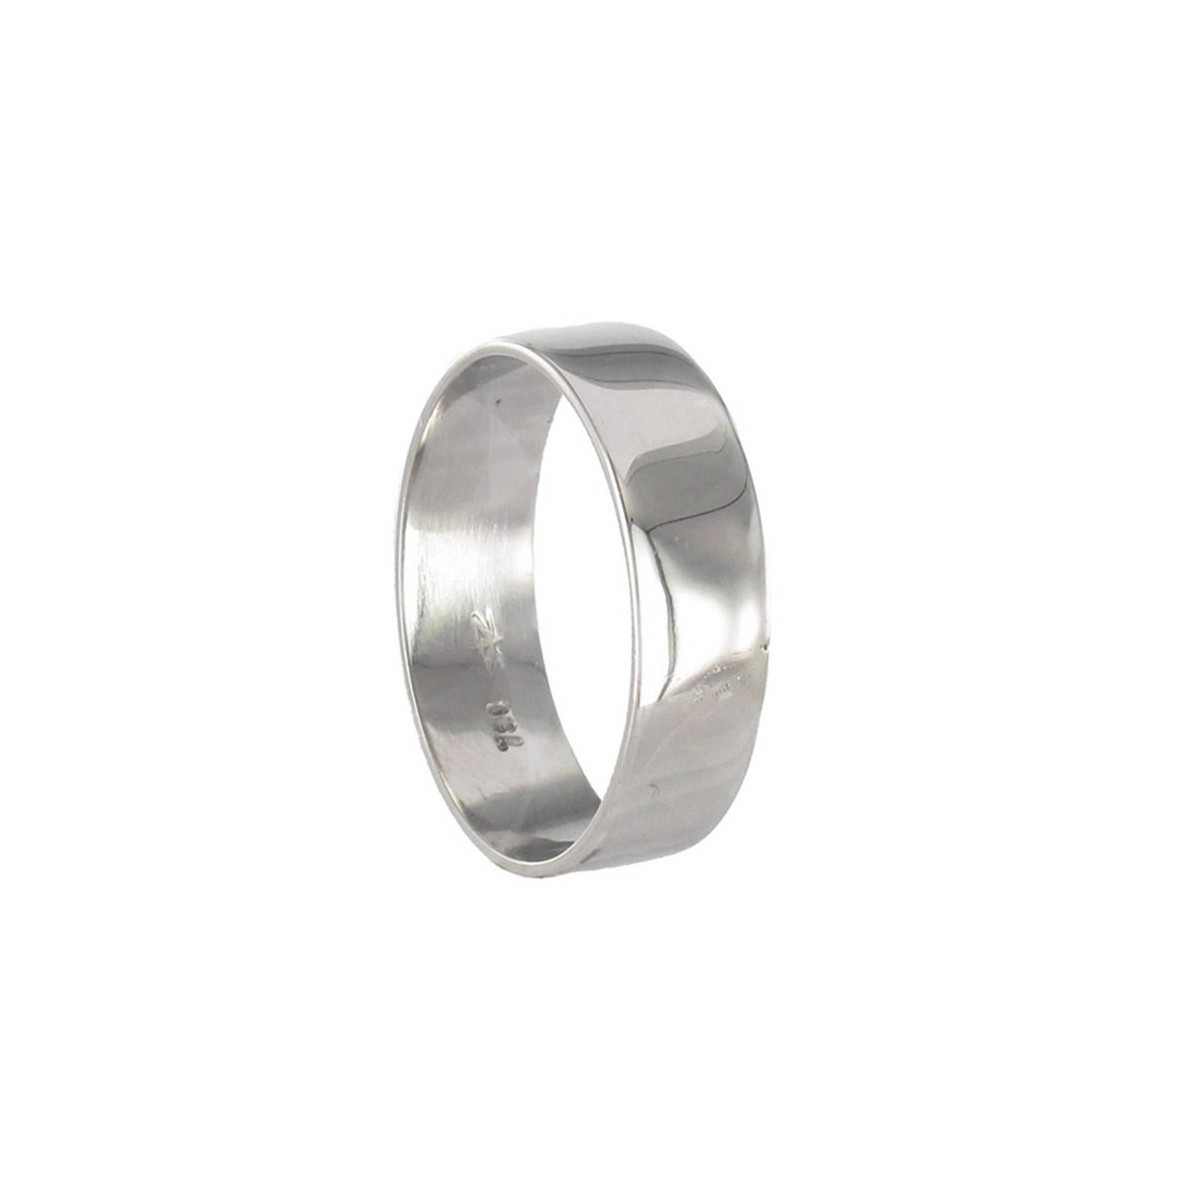 GOLD RING 6 MM WIDE